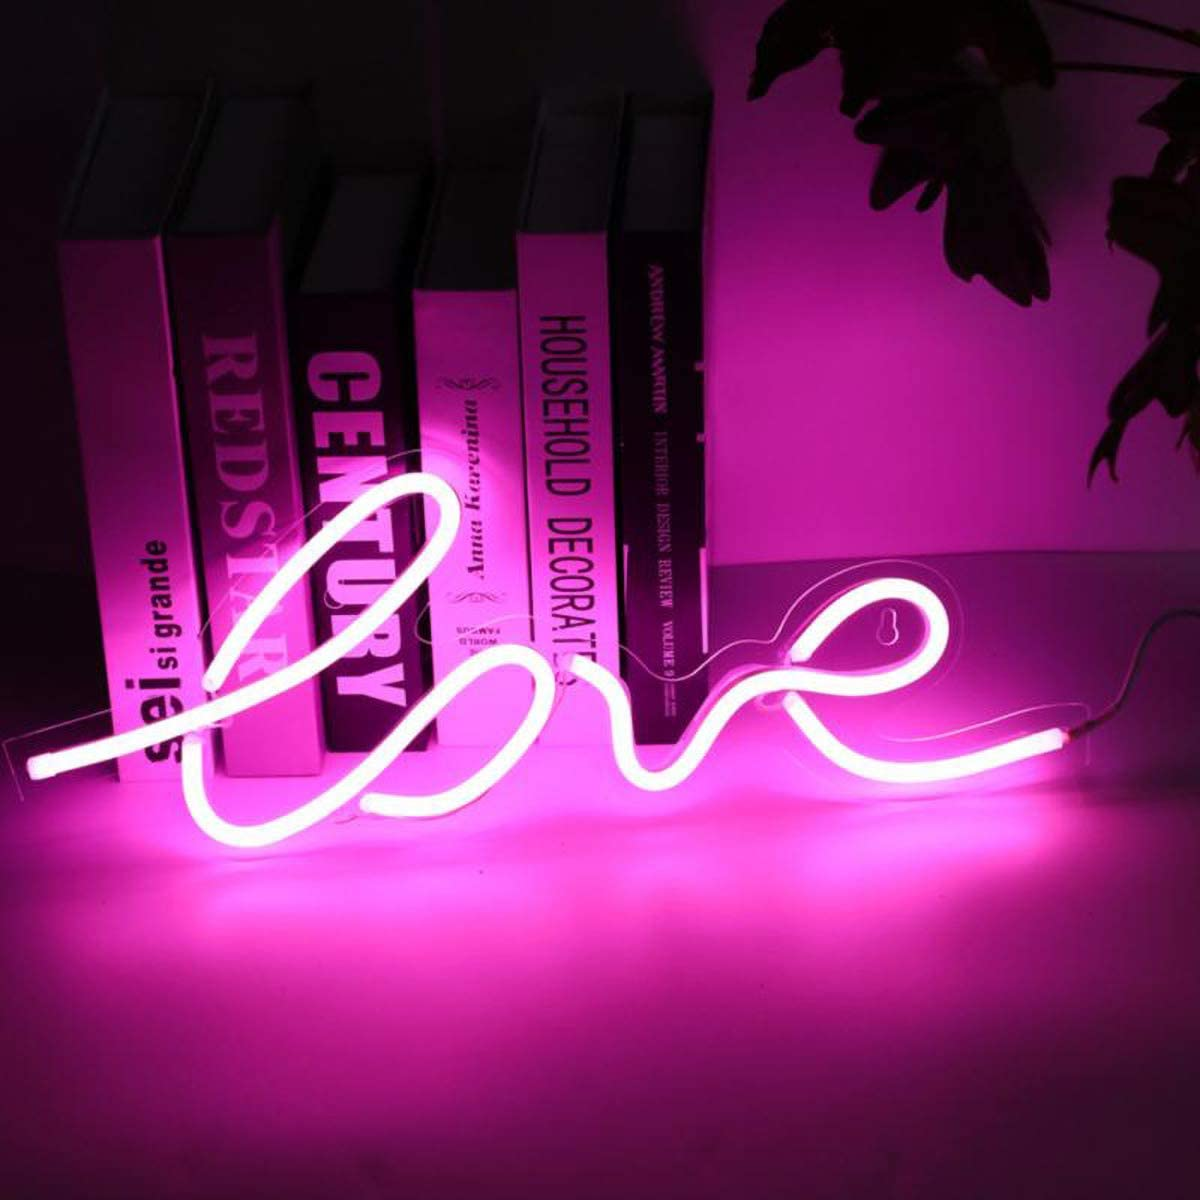 """Love Neon Signs 17.5"""" x 7"""", LED Neon Light Sign for Party Supplies, Marriage Proposal, Bedroom Decorations, Home Accessories, Wedding Decor, Table Decoration, Powered by USB Wire (Pink)"""